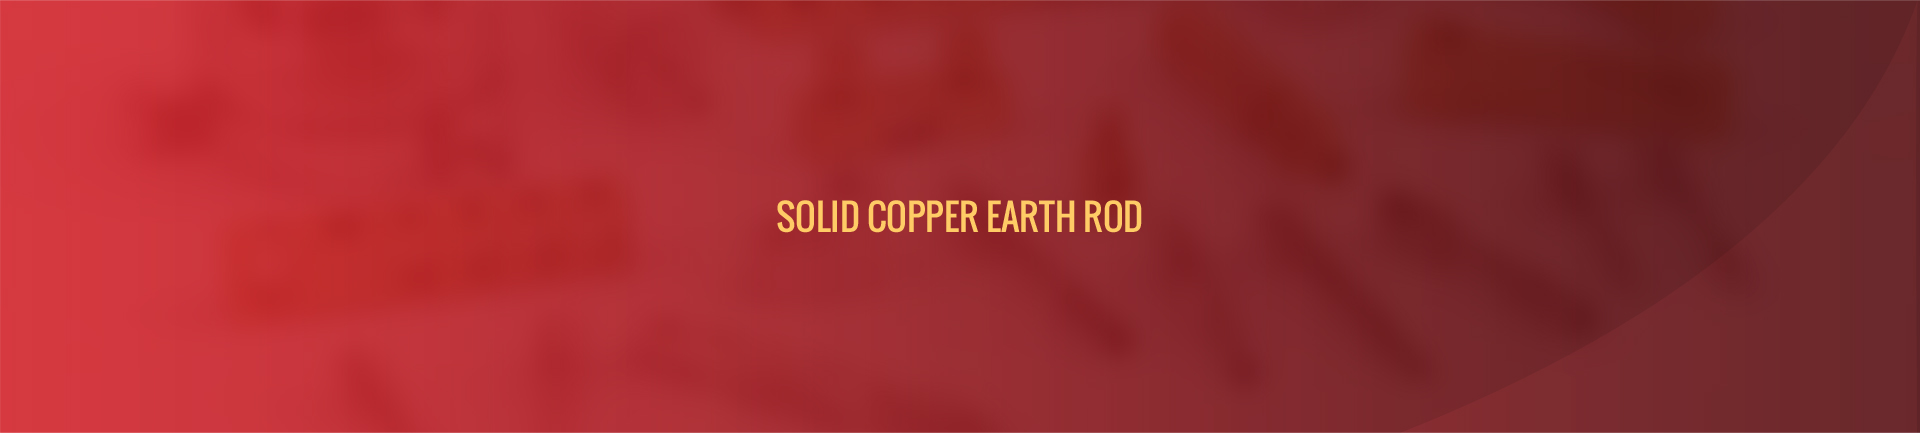 solid-copper-earth-rod-banner